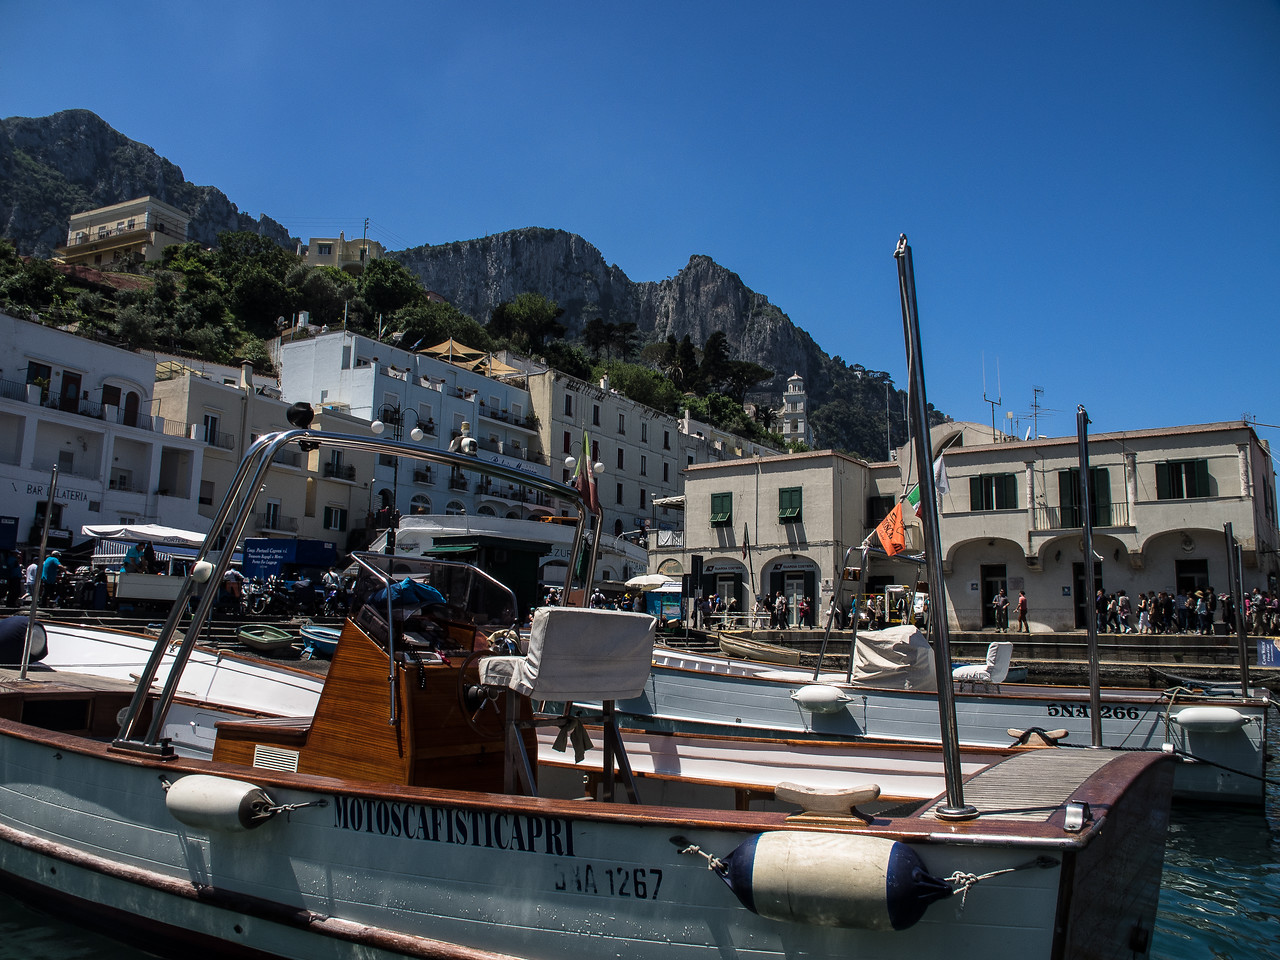 Motoscafisti - Motor Boats of Capri, seems to be a strong union town